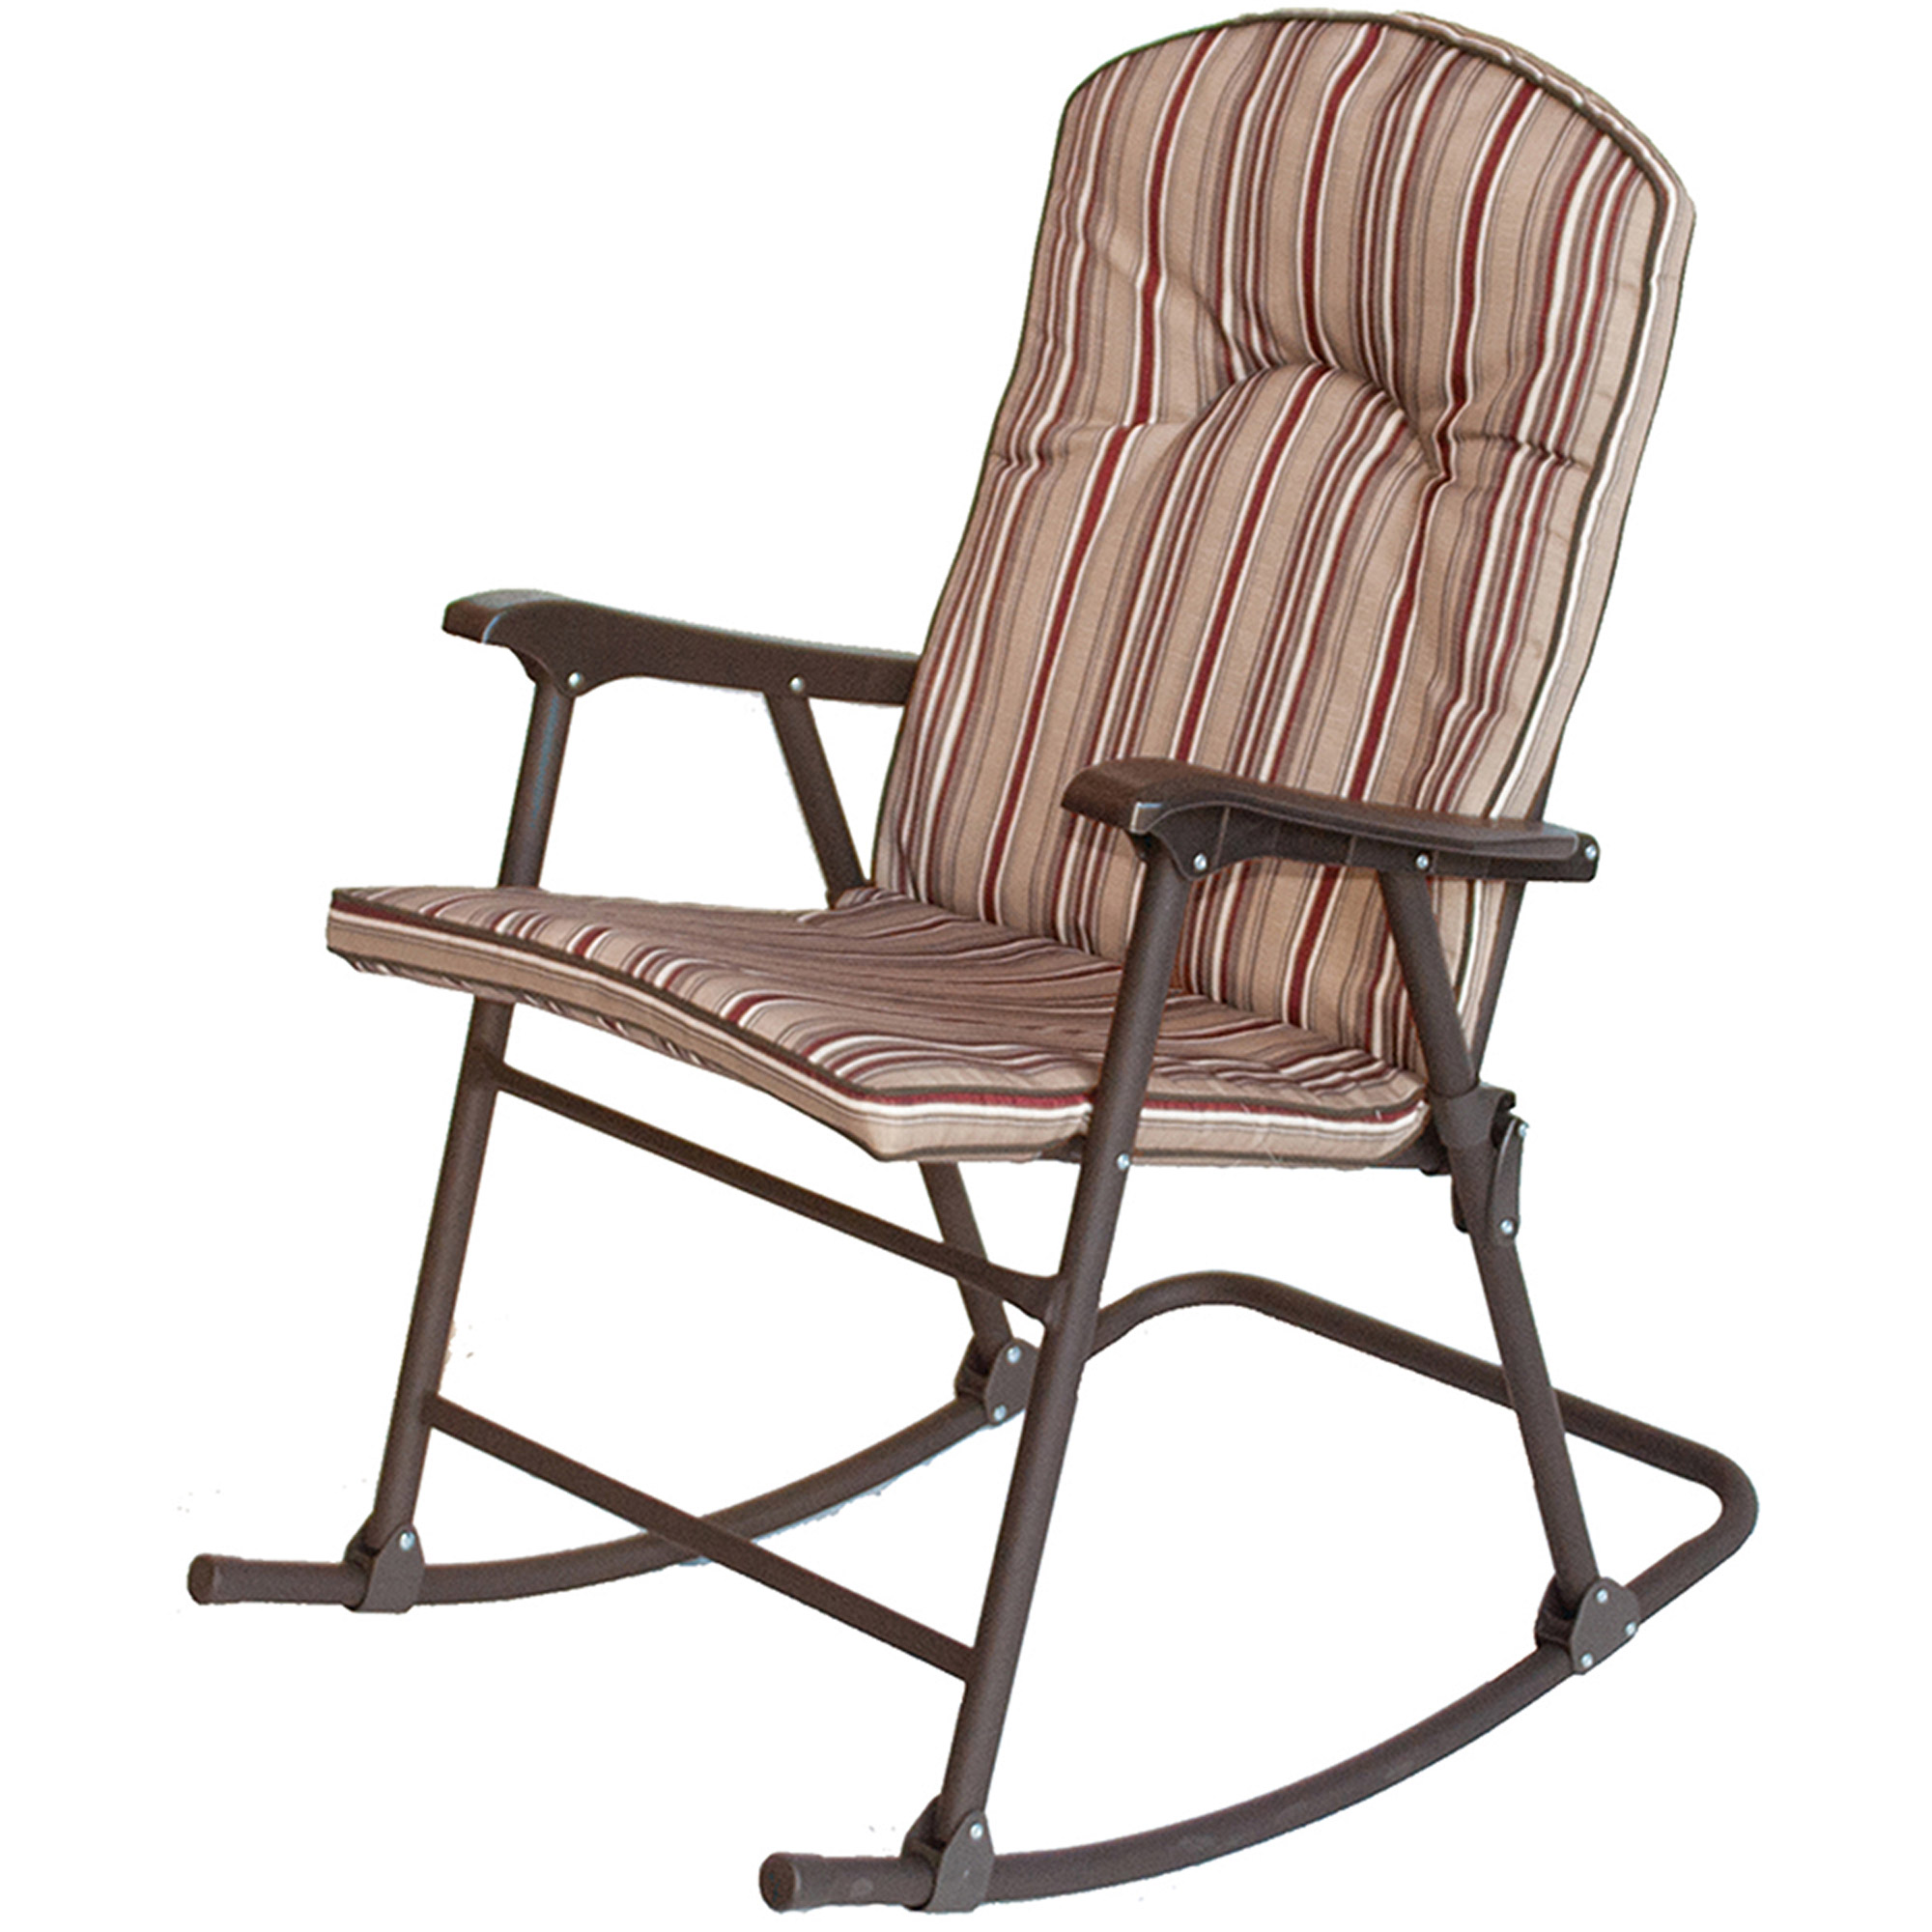 Prime Products Cambria Padded Rocker, Red Rock, 13-6803